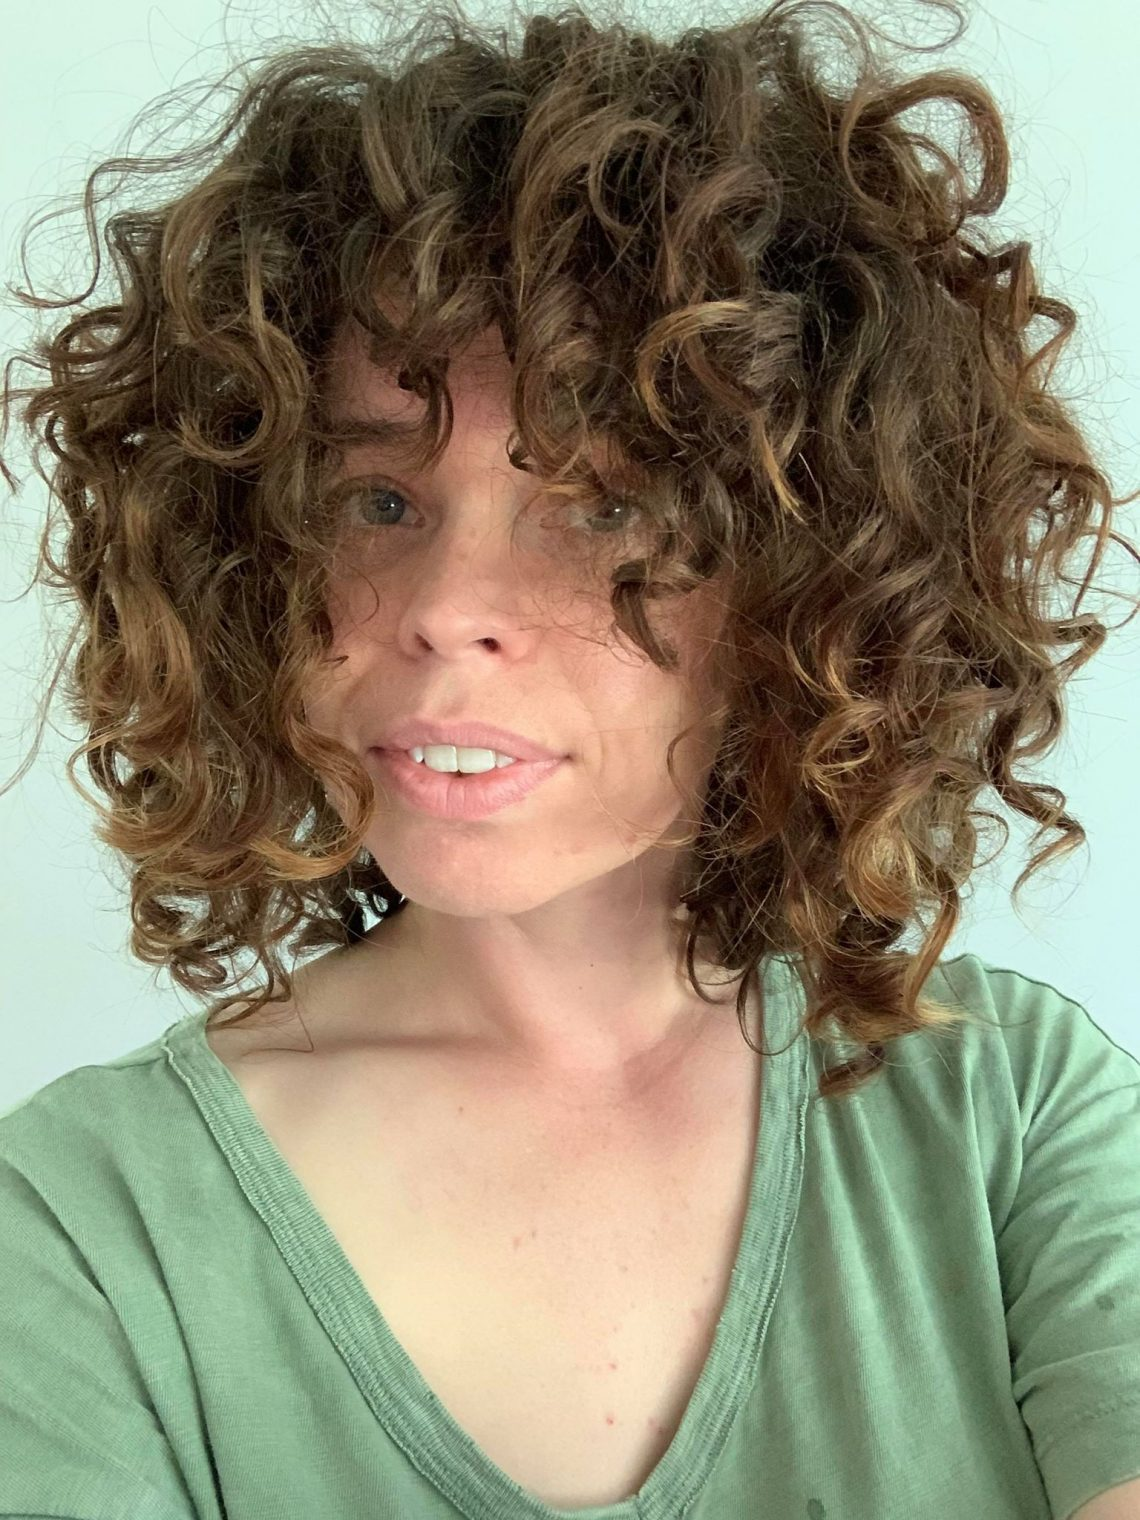 The Best Curly Hair Products For 3a Curls